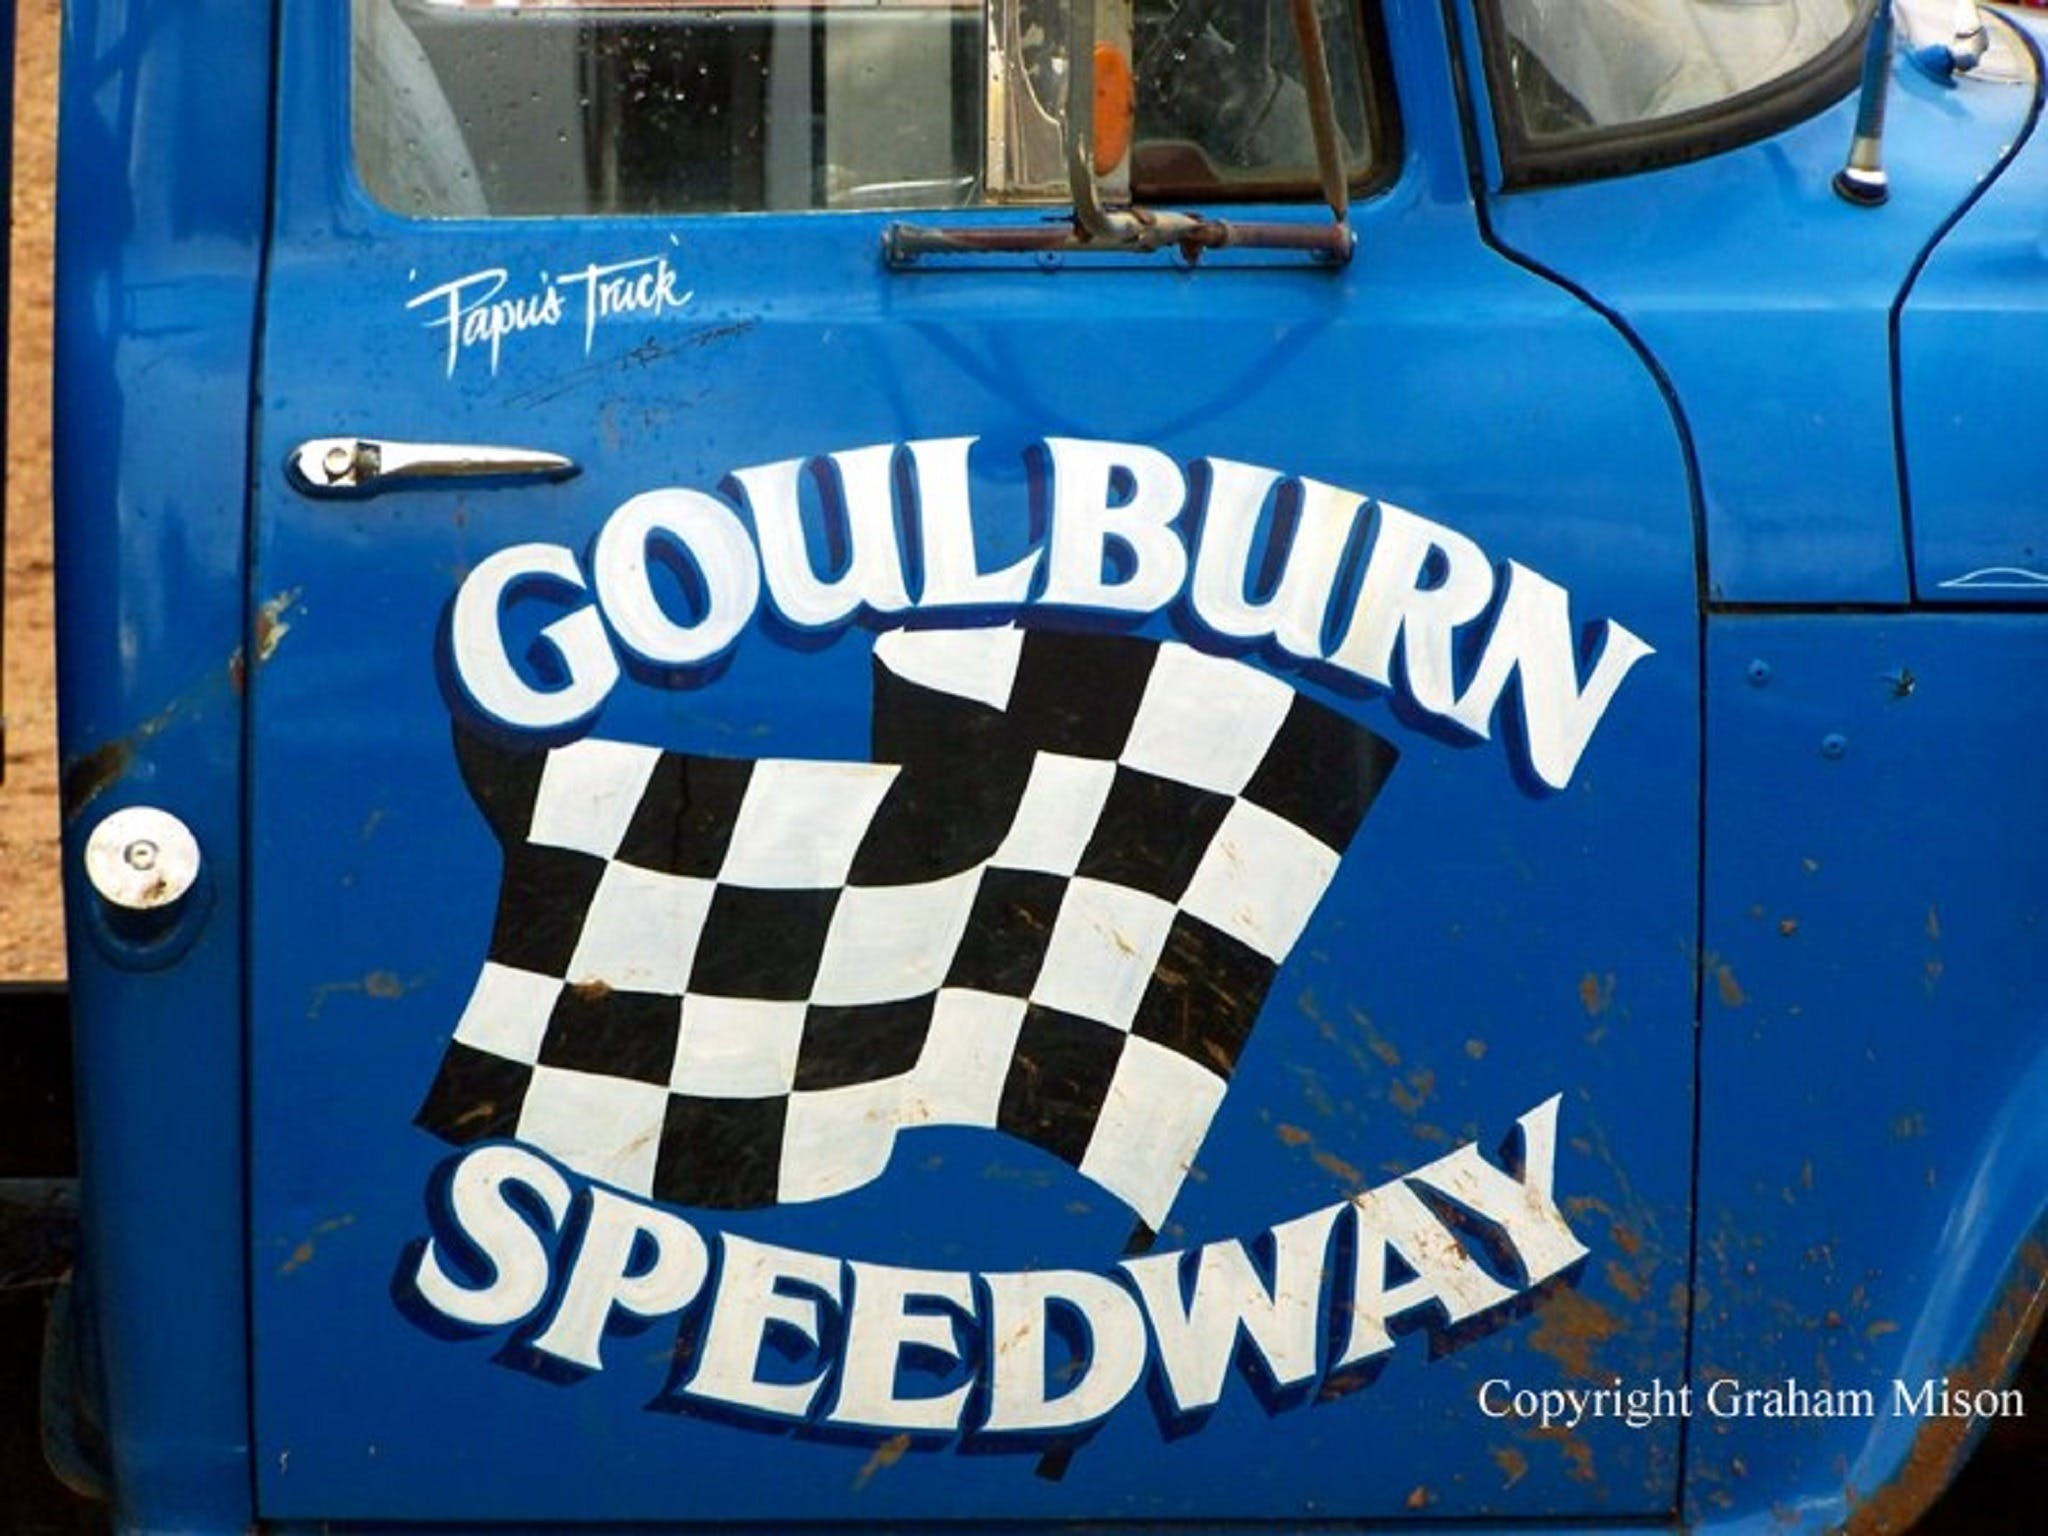 50 years of racing at Goulburn Speedway - Newcastle Accommodation